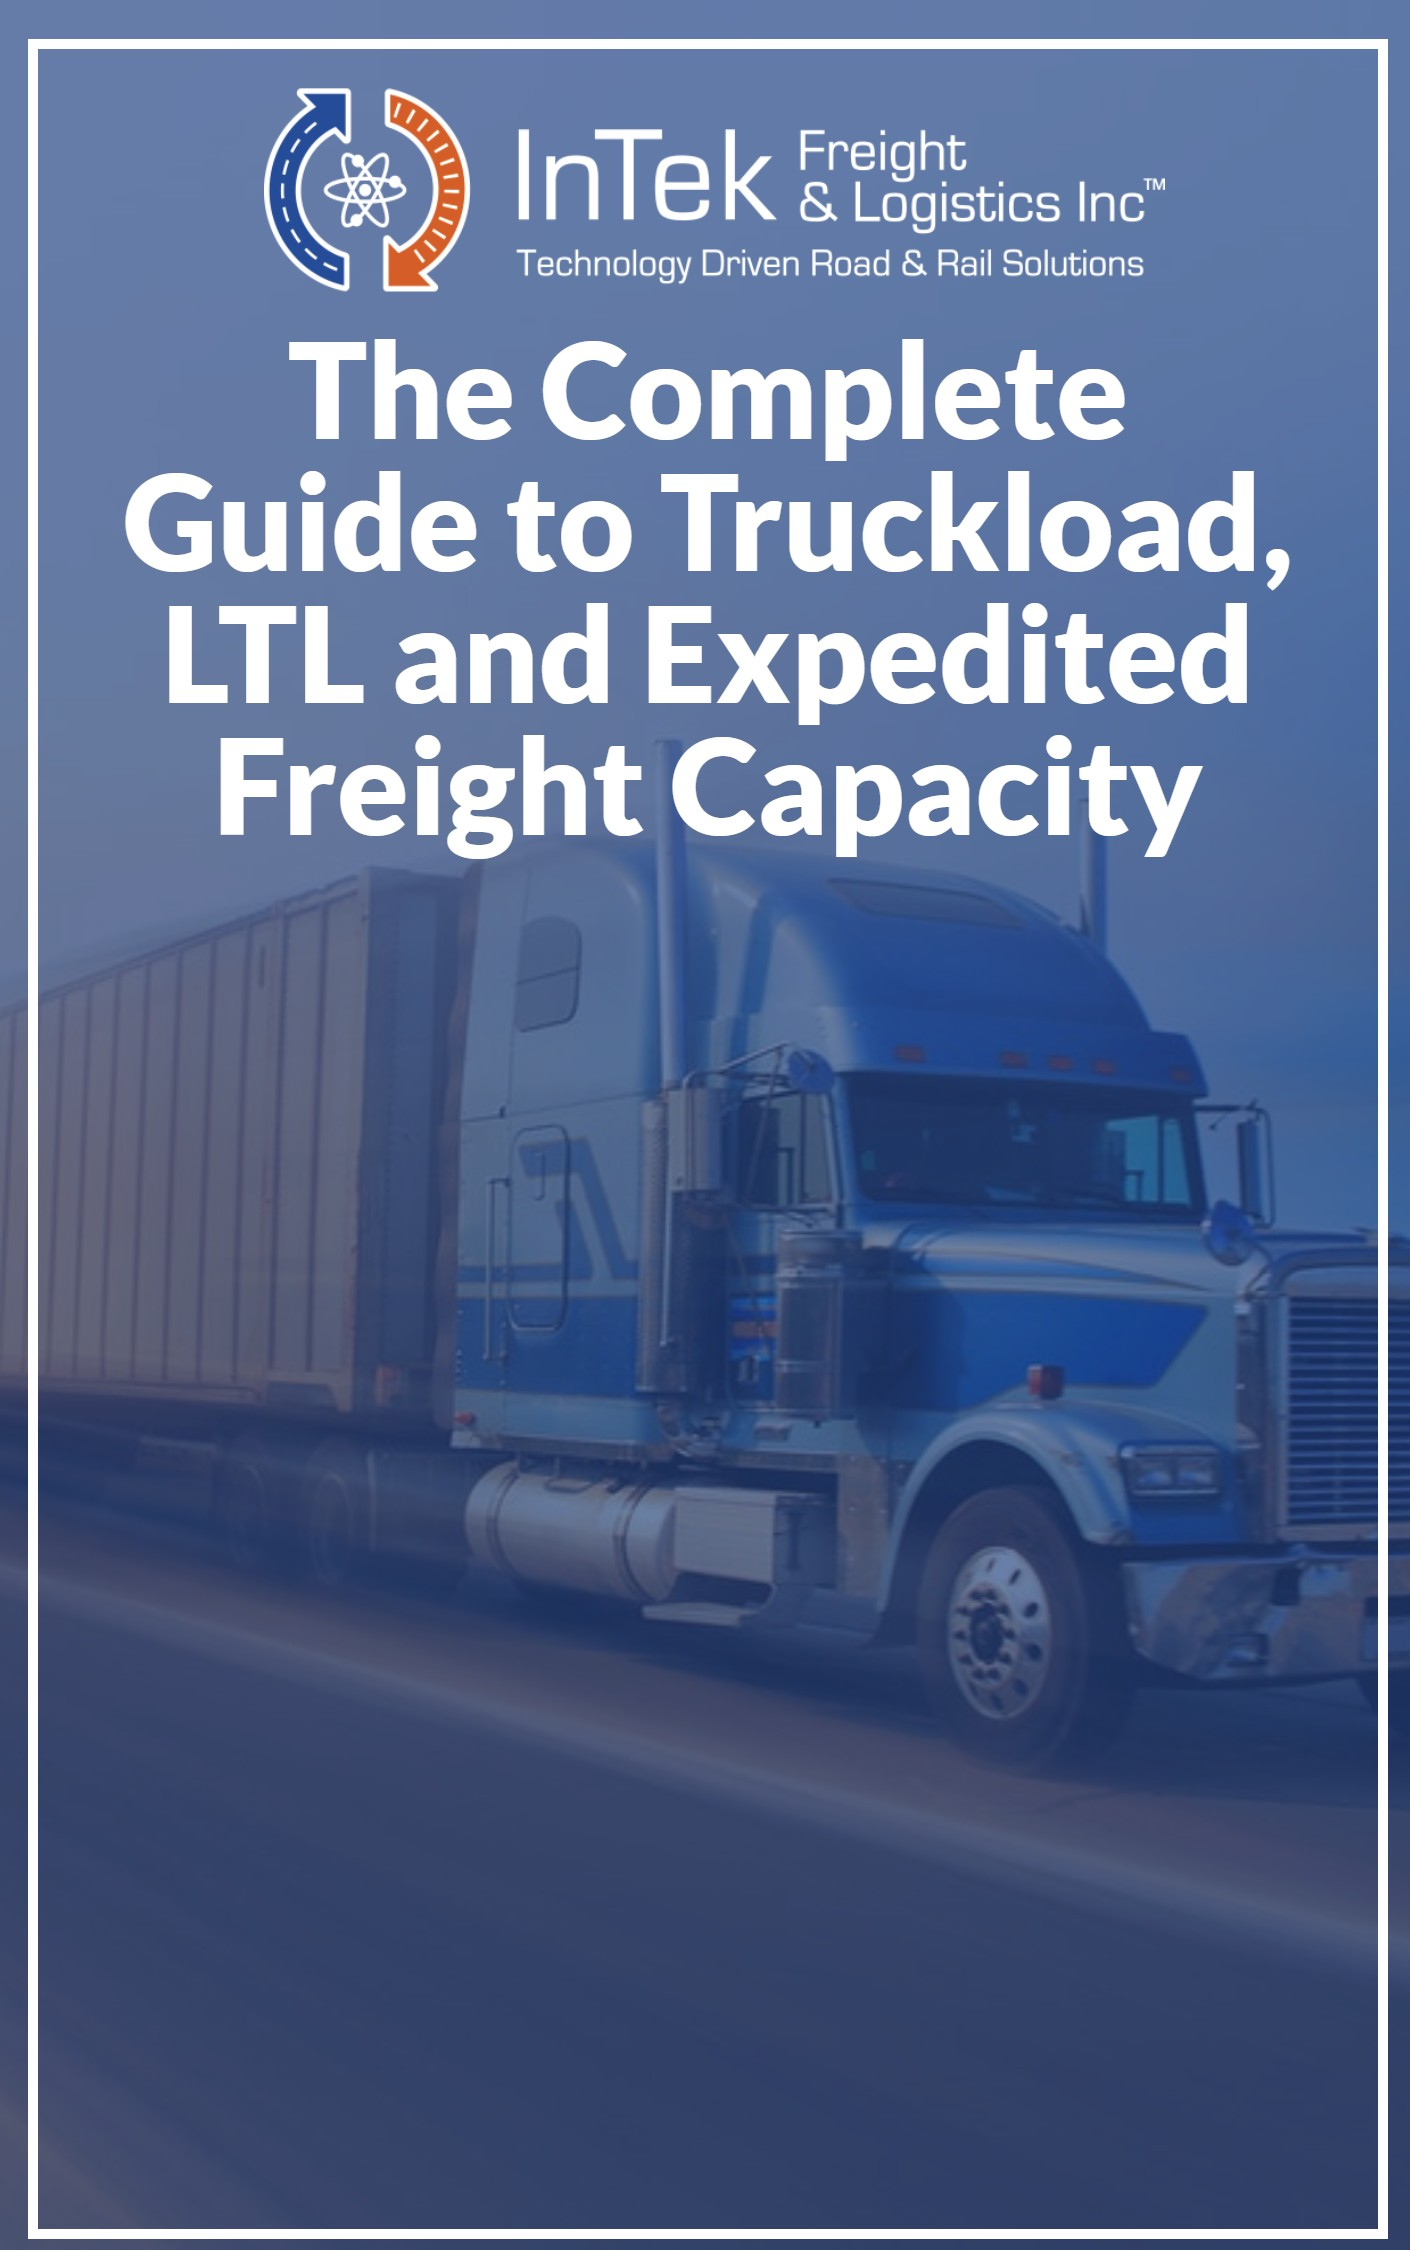 Truckload LTL and Expedited Freight Capacity (7)